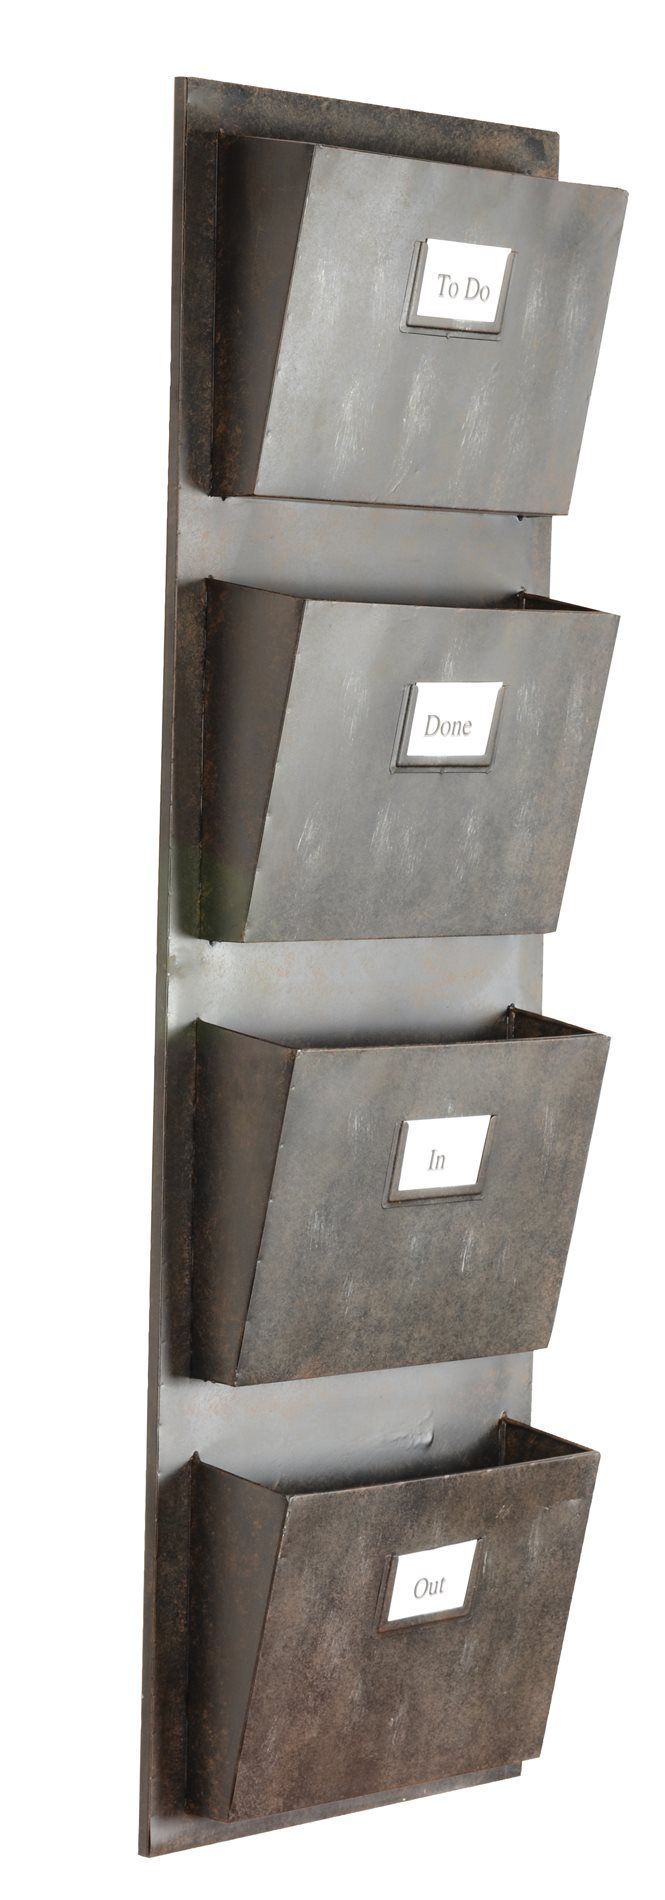 Lowest price on Linon Home Decor Products Inc. Gray Industrial Metal Four Slot Mailbox AHW-M1240-1. Shop today!